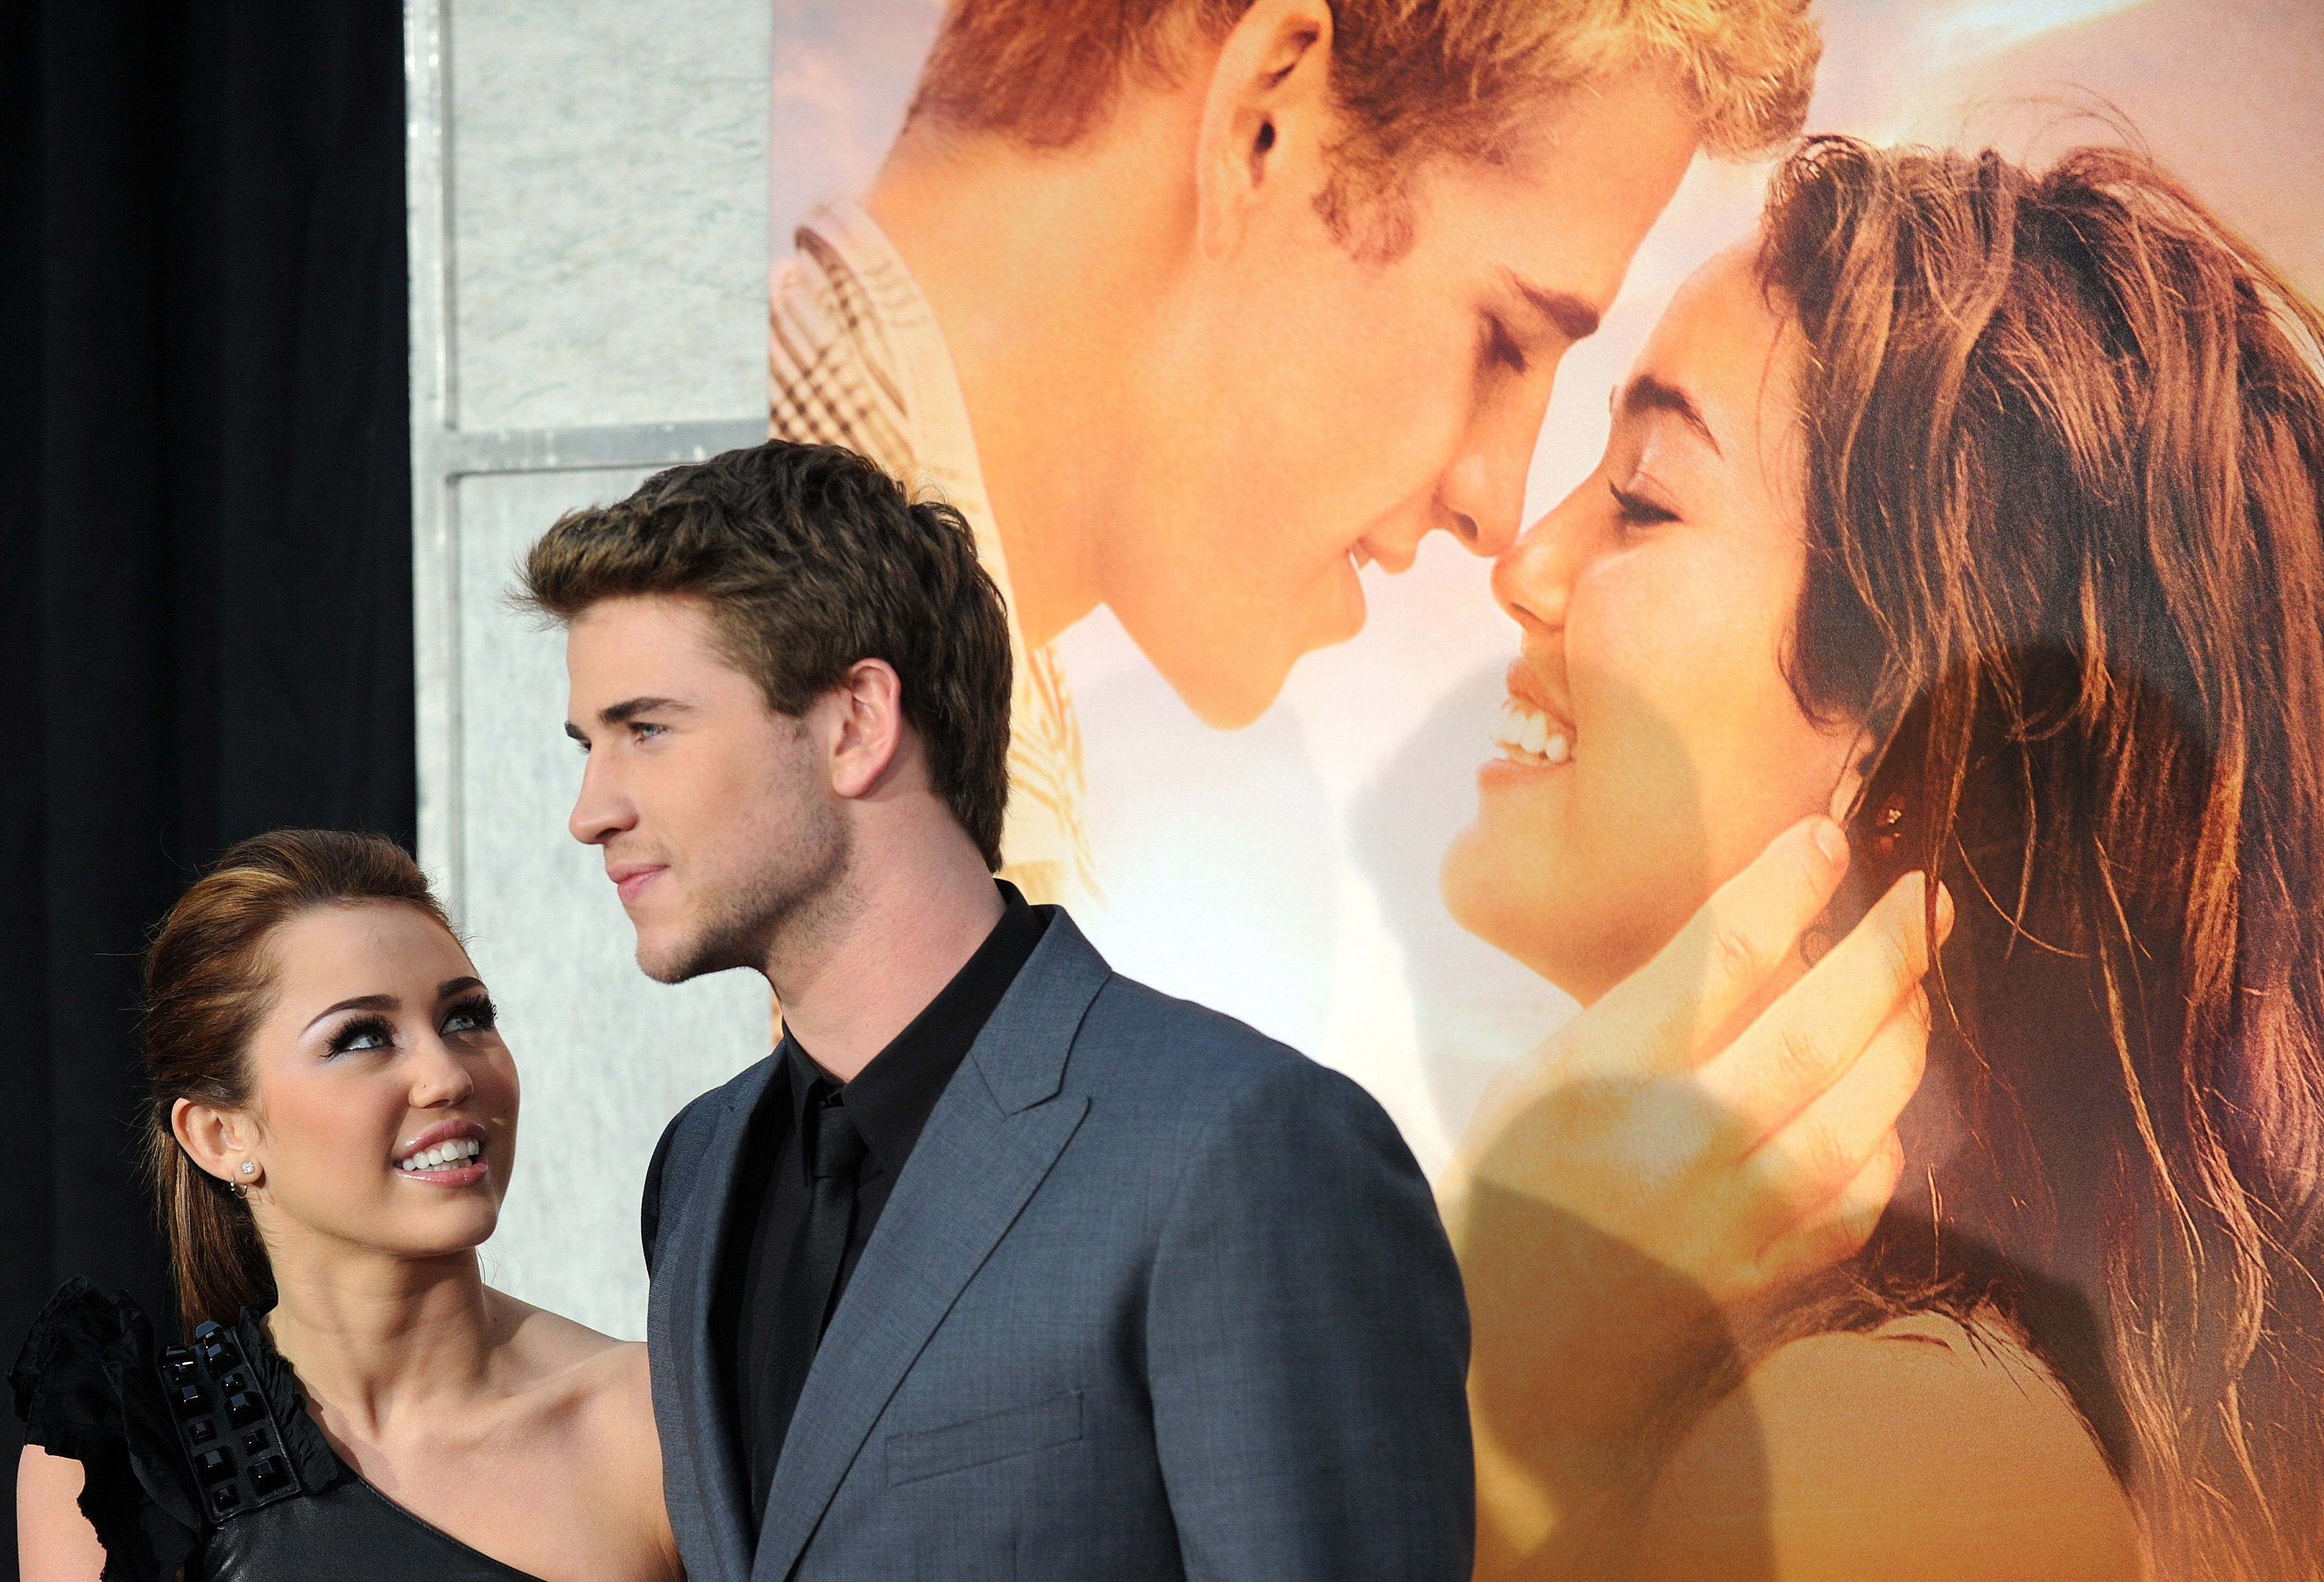 Actress and singer Miley Cyrus and actor Liam Hemsworth arrive for the premiere of 'The last song' in Hollywood, California on March 25, 2010. AFP PHOTO / GABRIEL BOUYS (Photo credit should read GABRIEL BOUYS/AFP/Getty Images)